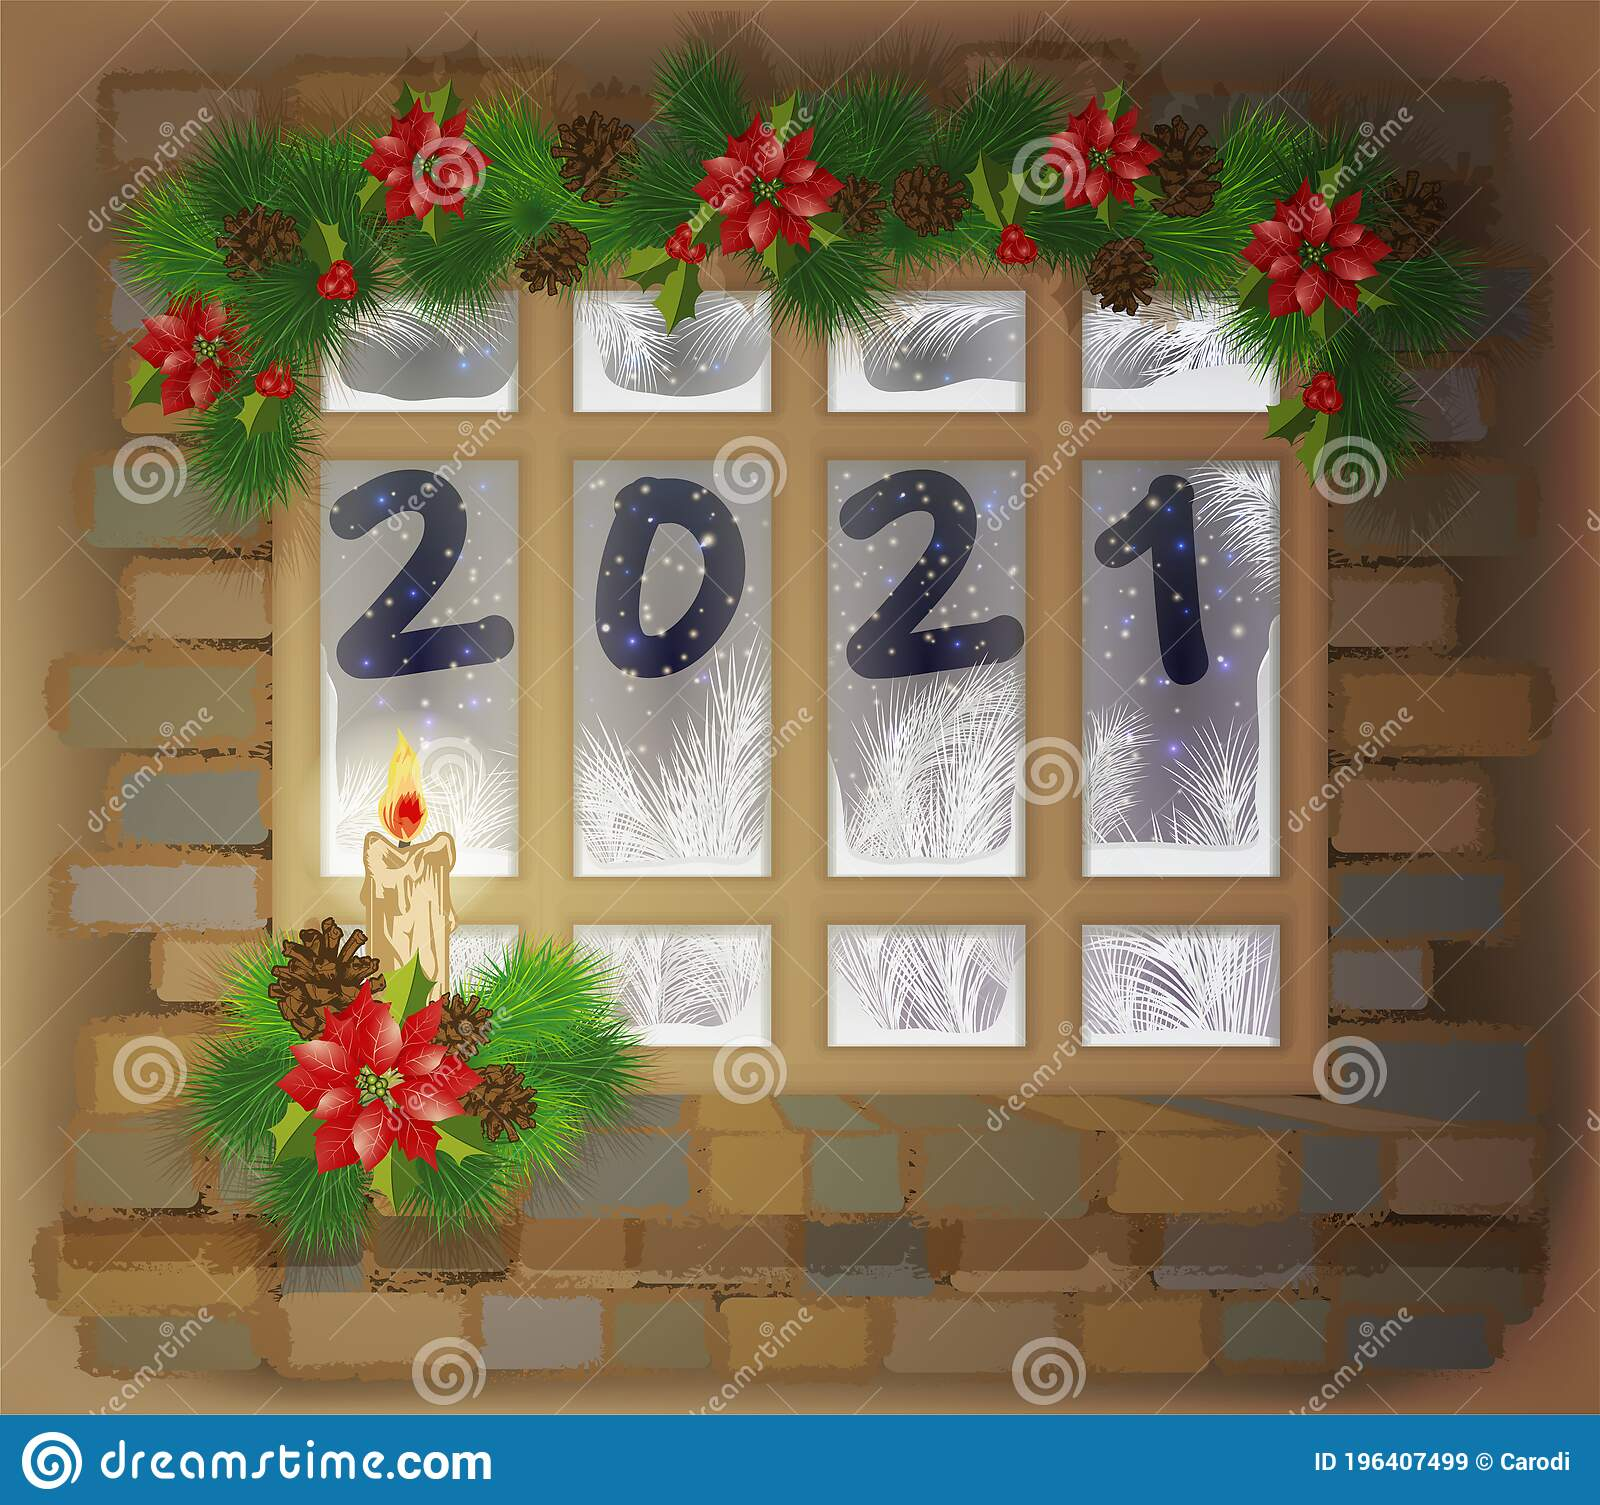 Poinsettias For Christmas 2021 Happy New 2021 Year Window With Xmas Tree Red Flower Poinsettia And Candle Stock Vector Illustration Of Frame Festive 196407499